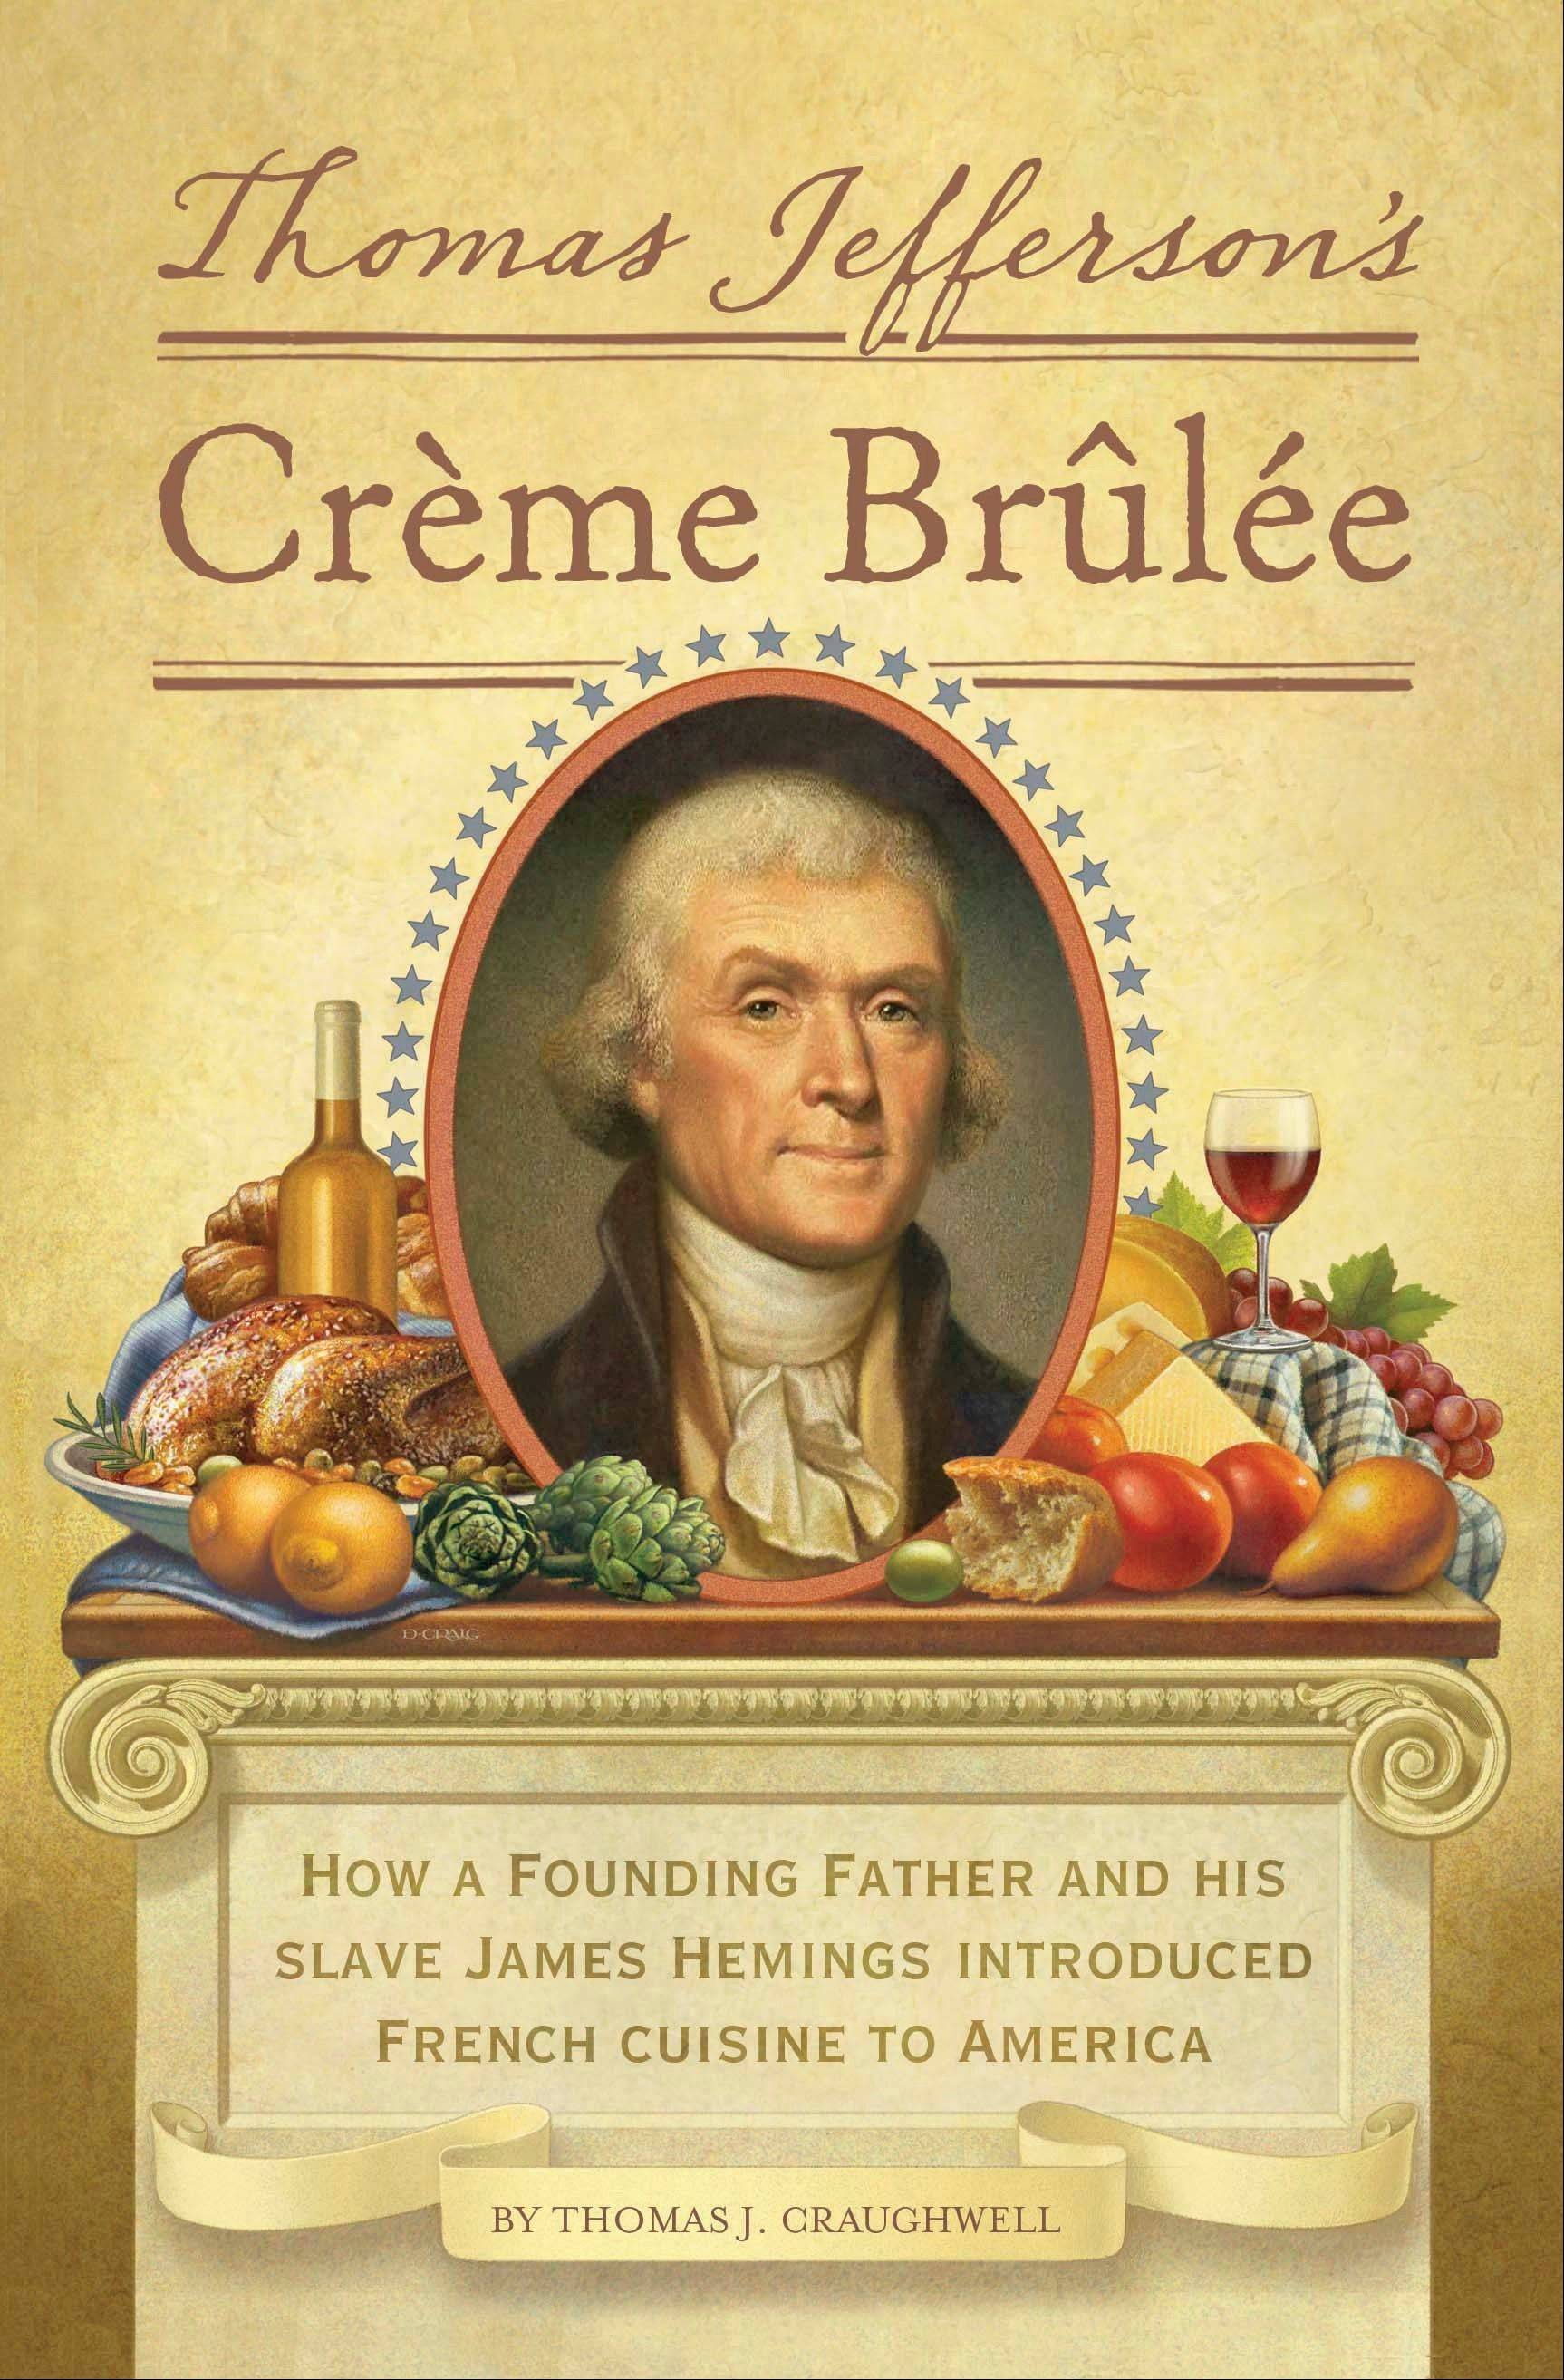 "This book cover image released by Quirk Books shows ""Thomas Jefferson's Creme Brulee: How a Founding Father and His Slave James Hemings Introduced French Cuisine to America,"" by Thomas J. Craughwell."